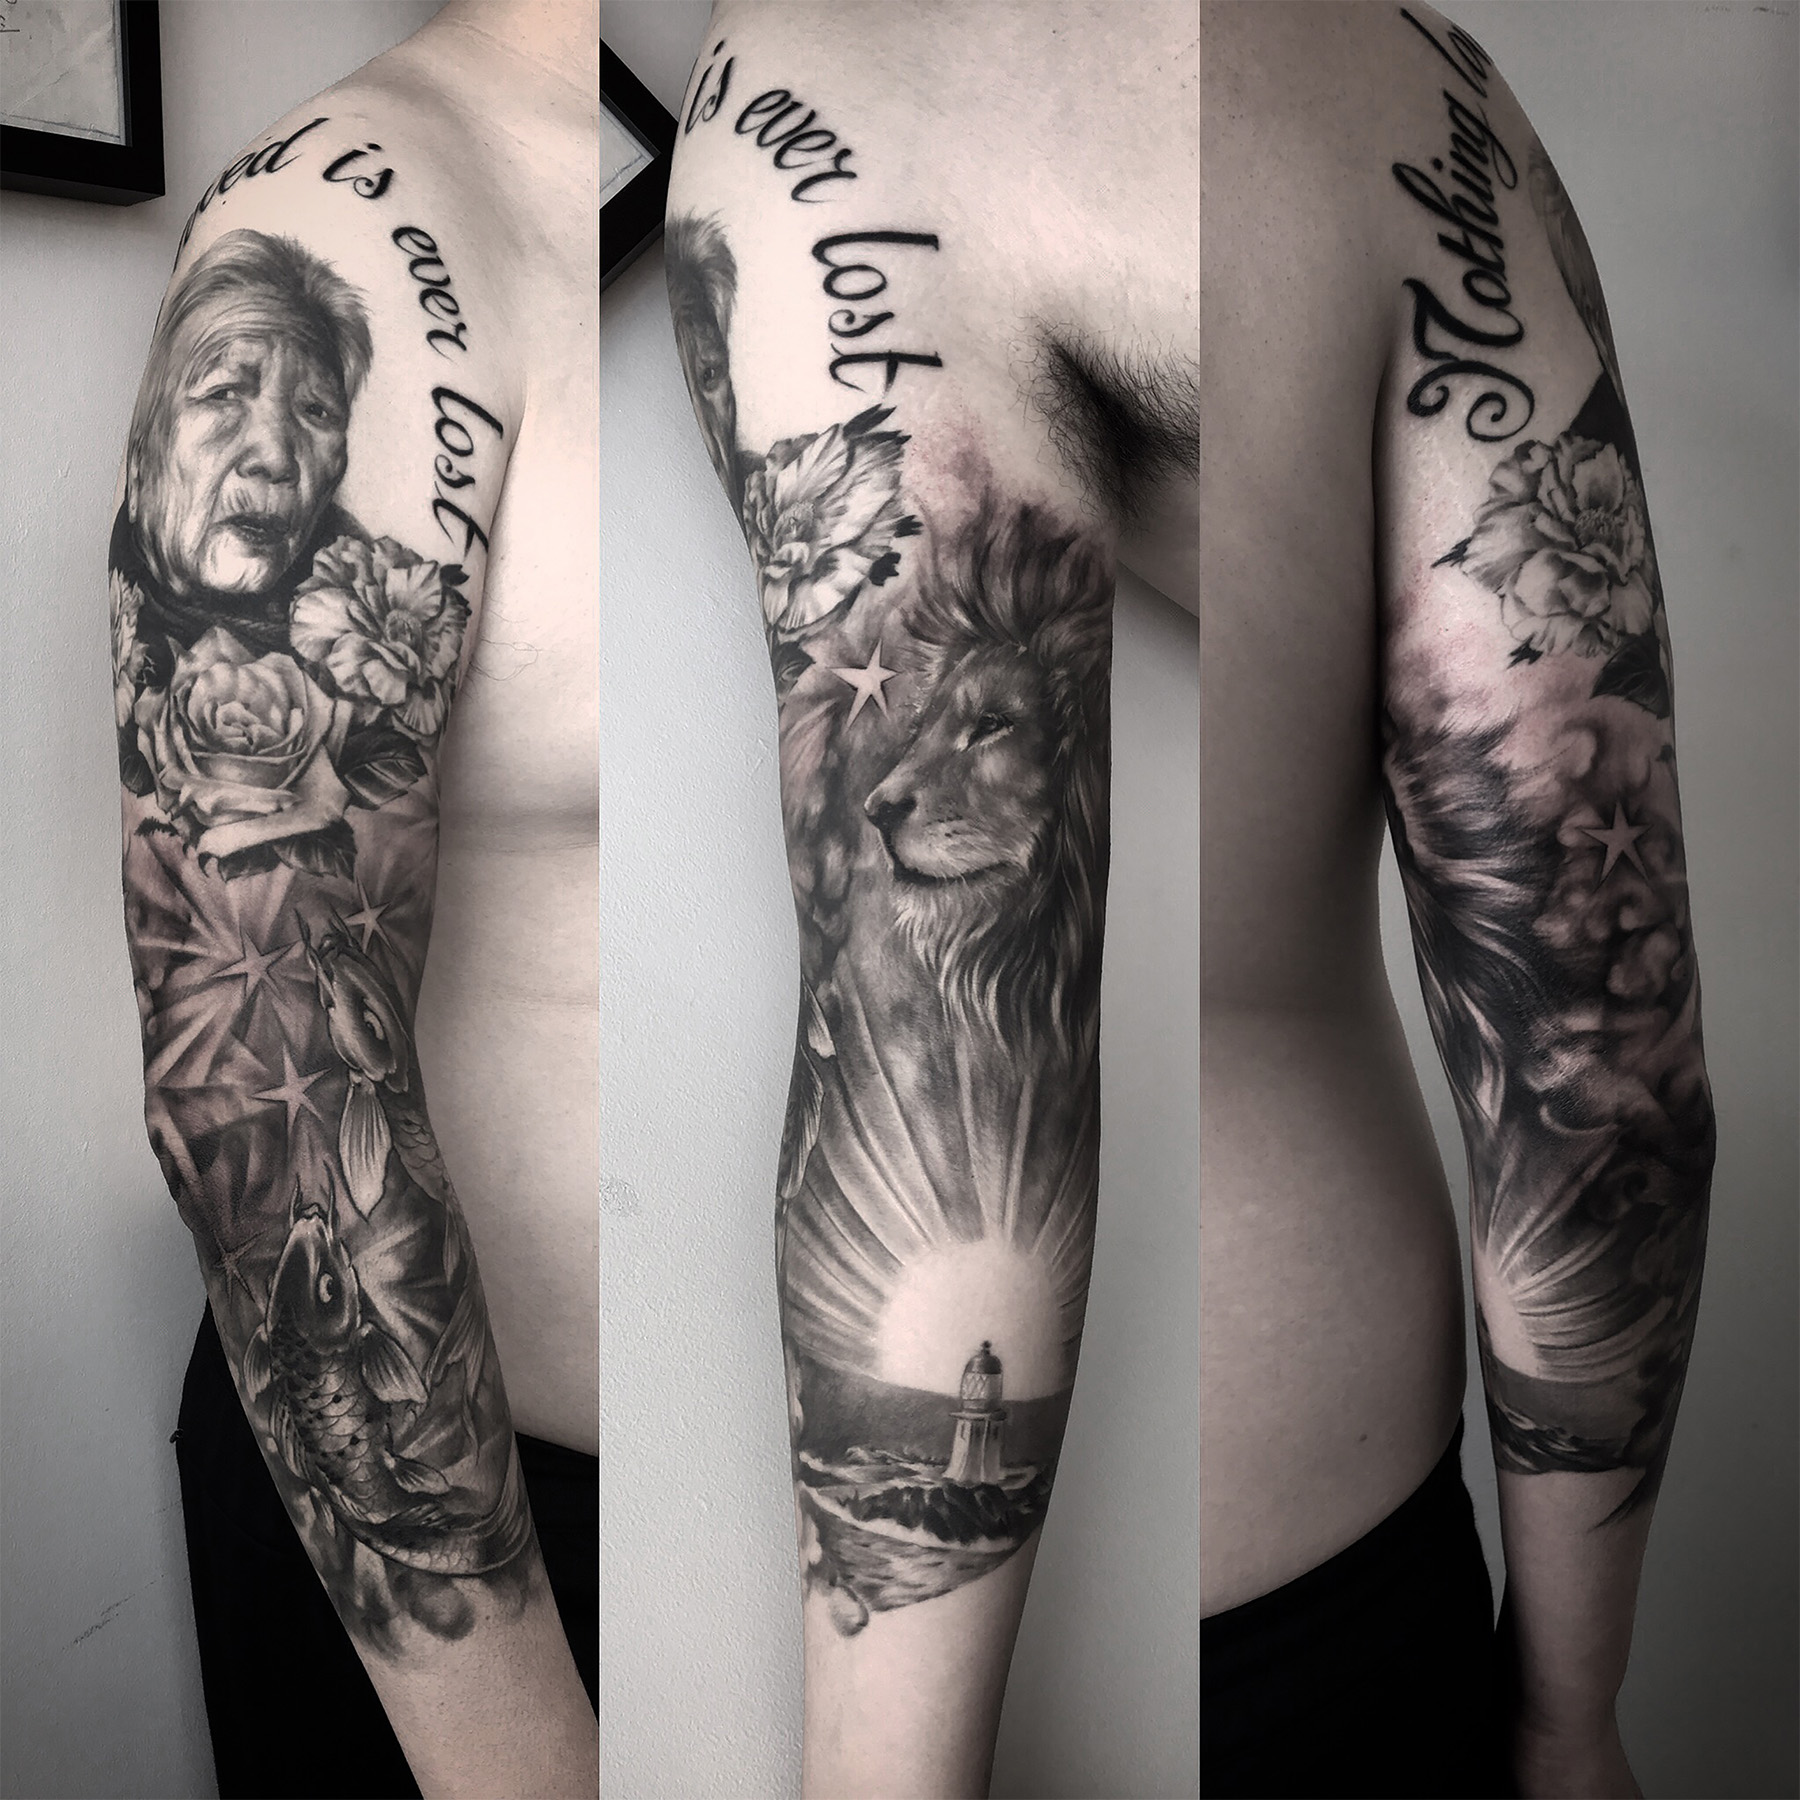 dreamhand-tattoo-Han-37-20181215032429799